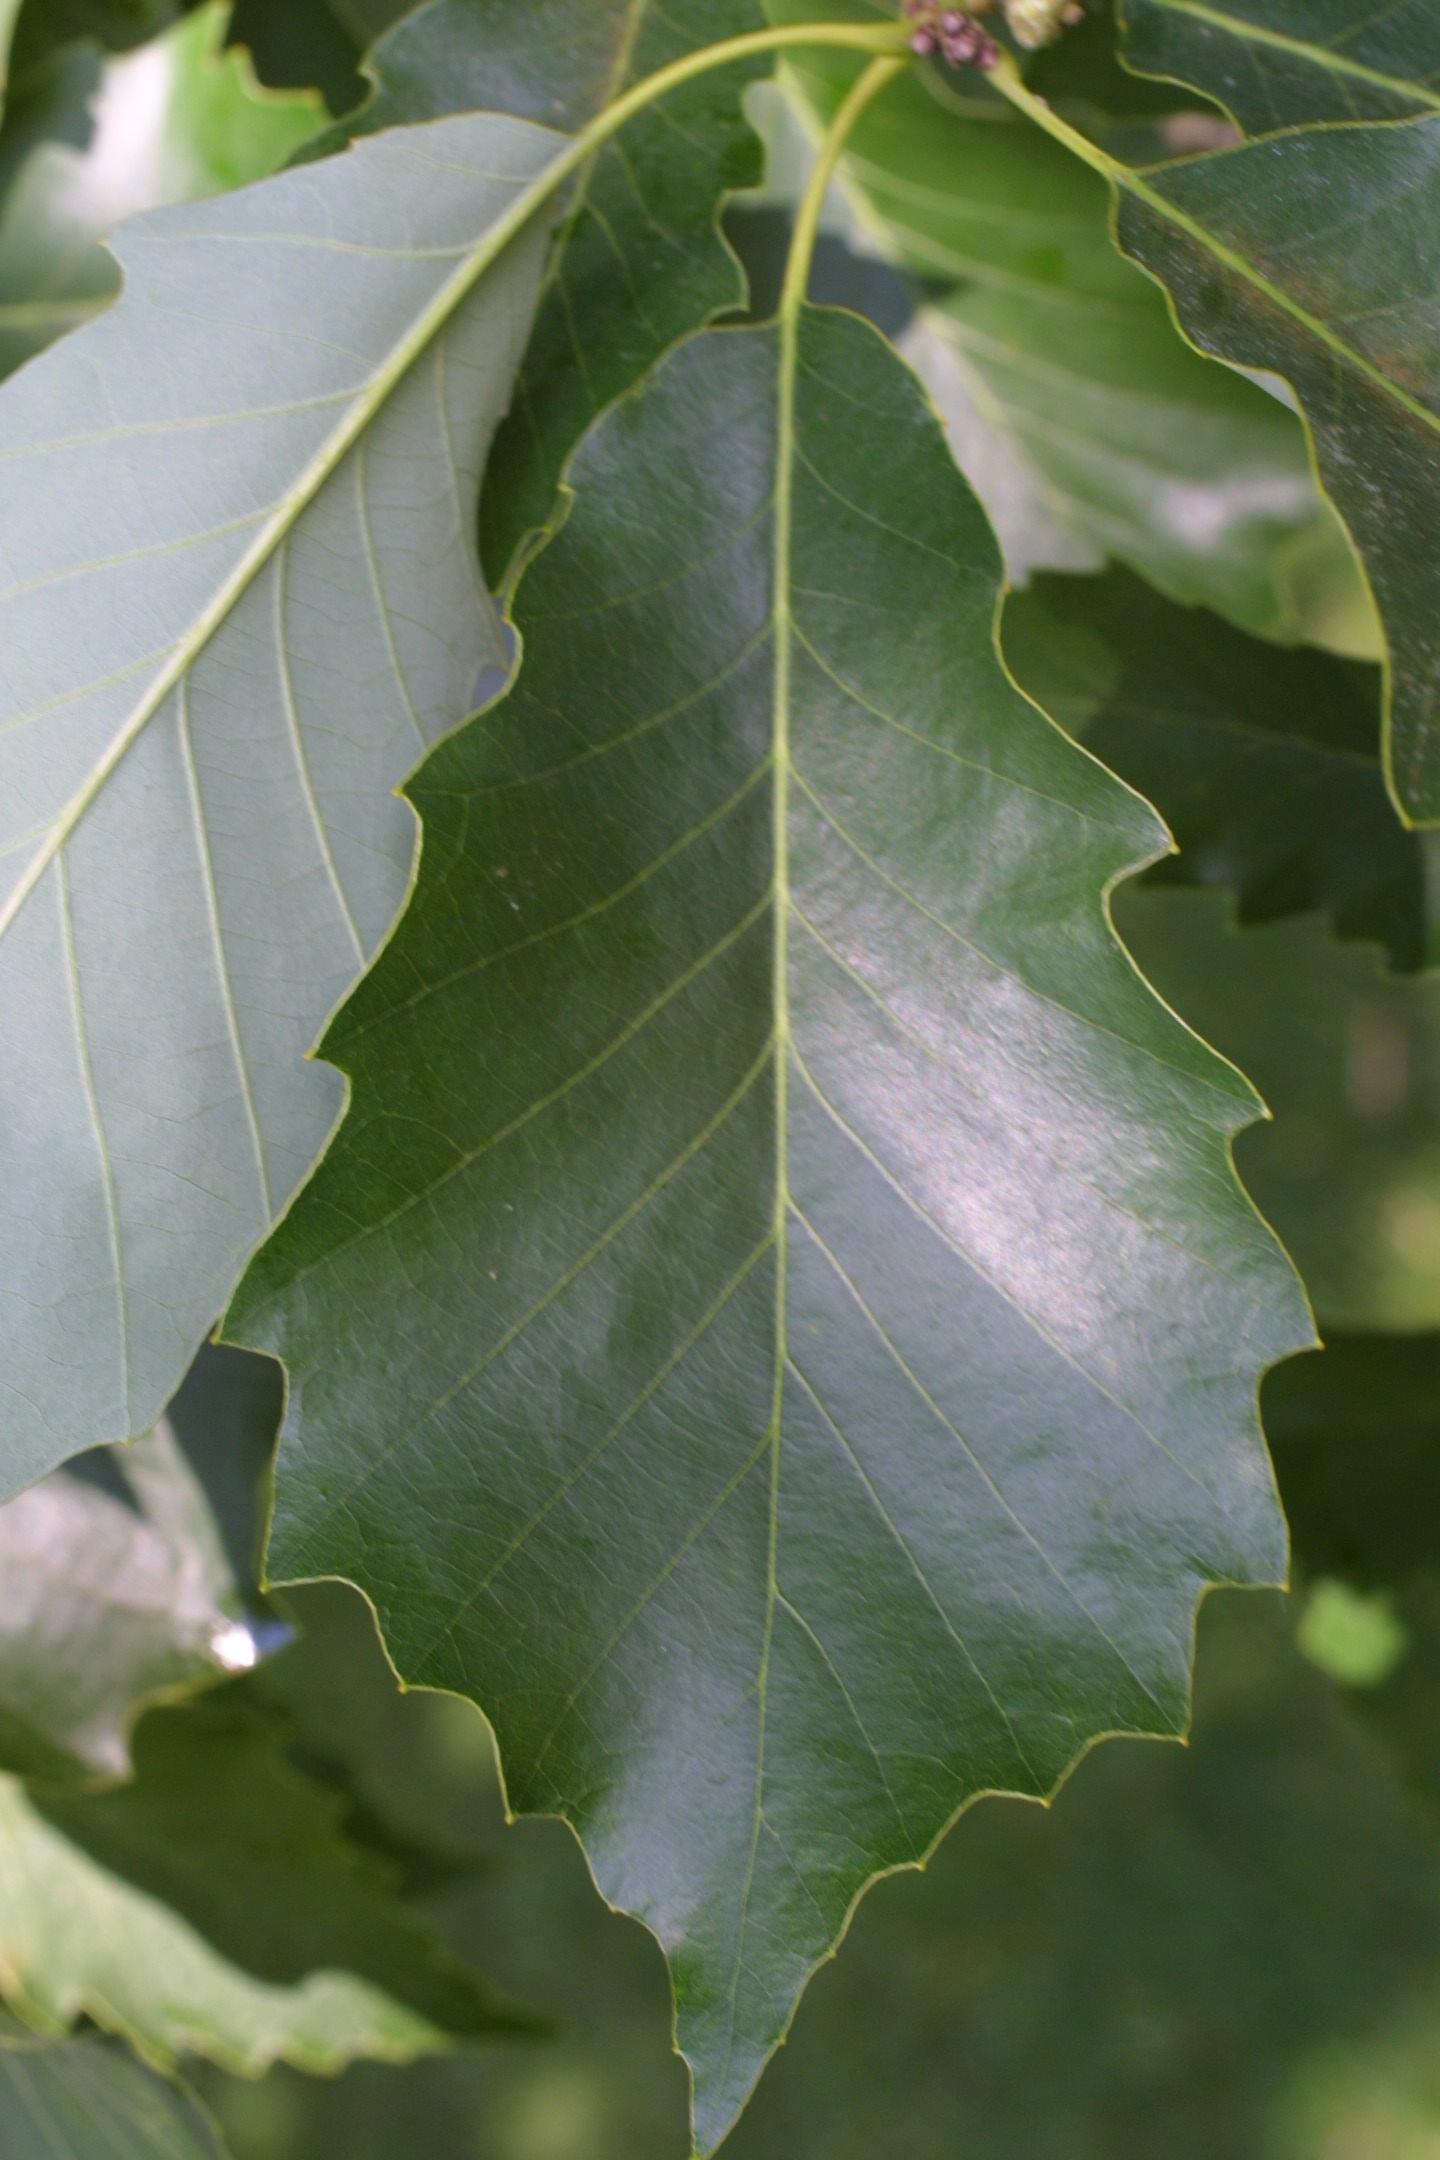 Above is the Chinkapin Oak leaf and below is the Chinkapin Oak seed.